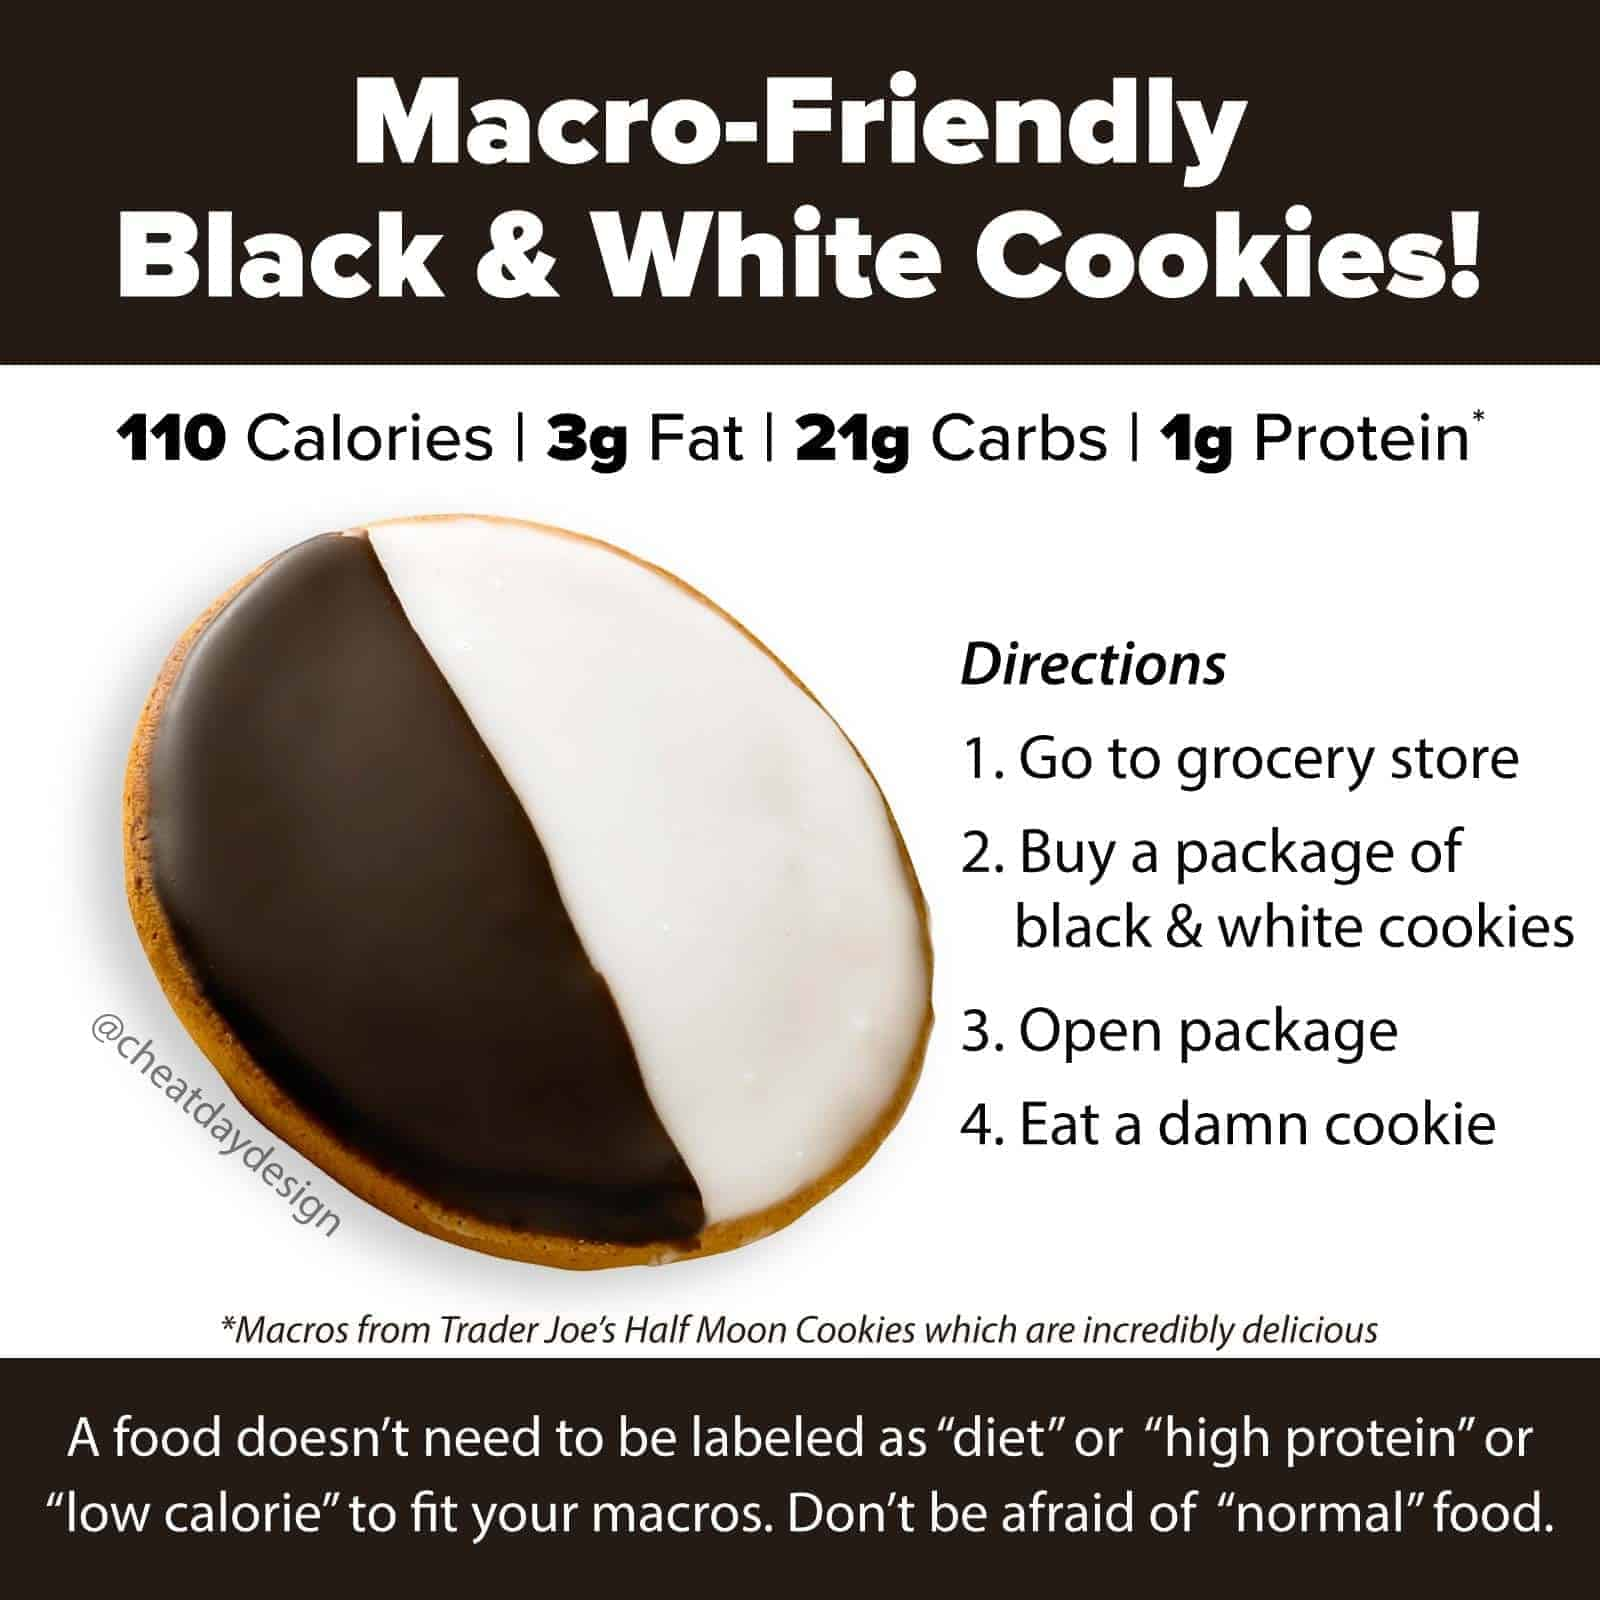 Macro-friendly black and white cookies